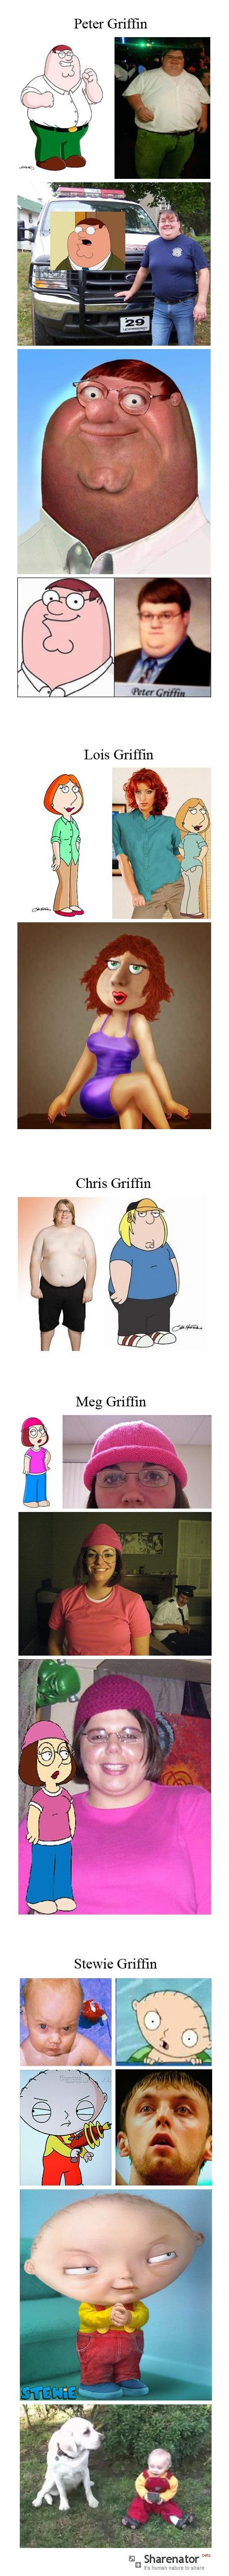 galutinis - what if family guy characters were real